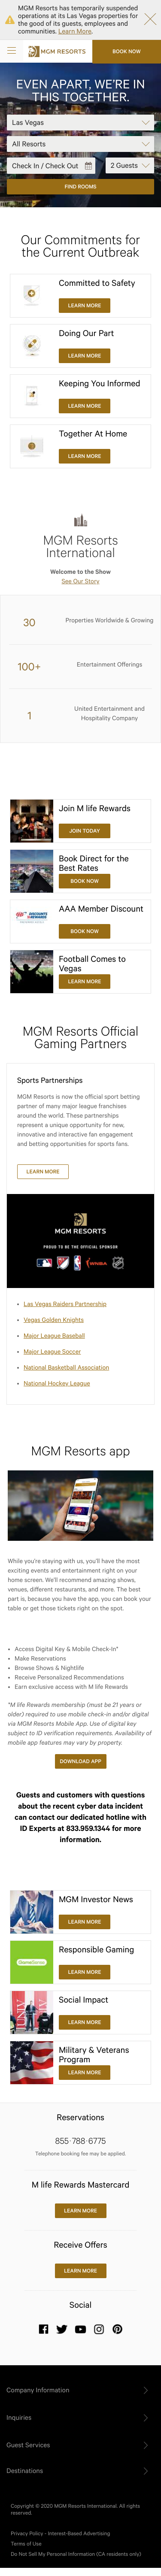 MGM Resorts Coupon